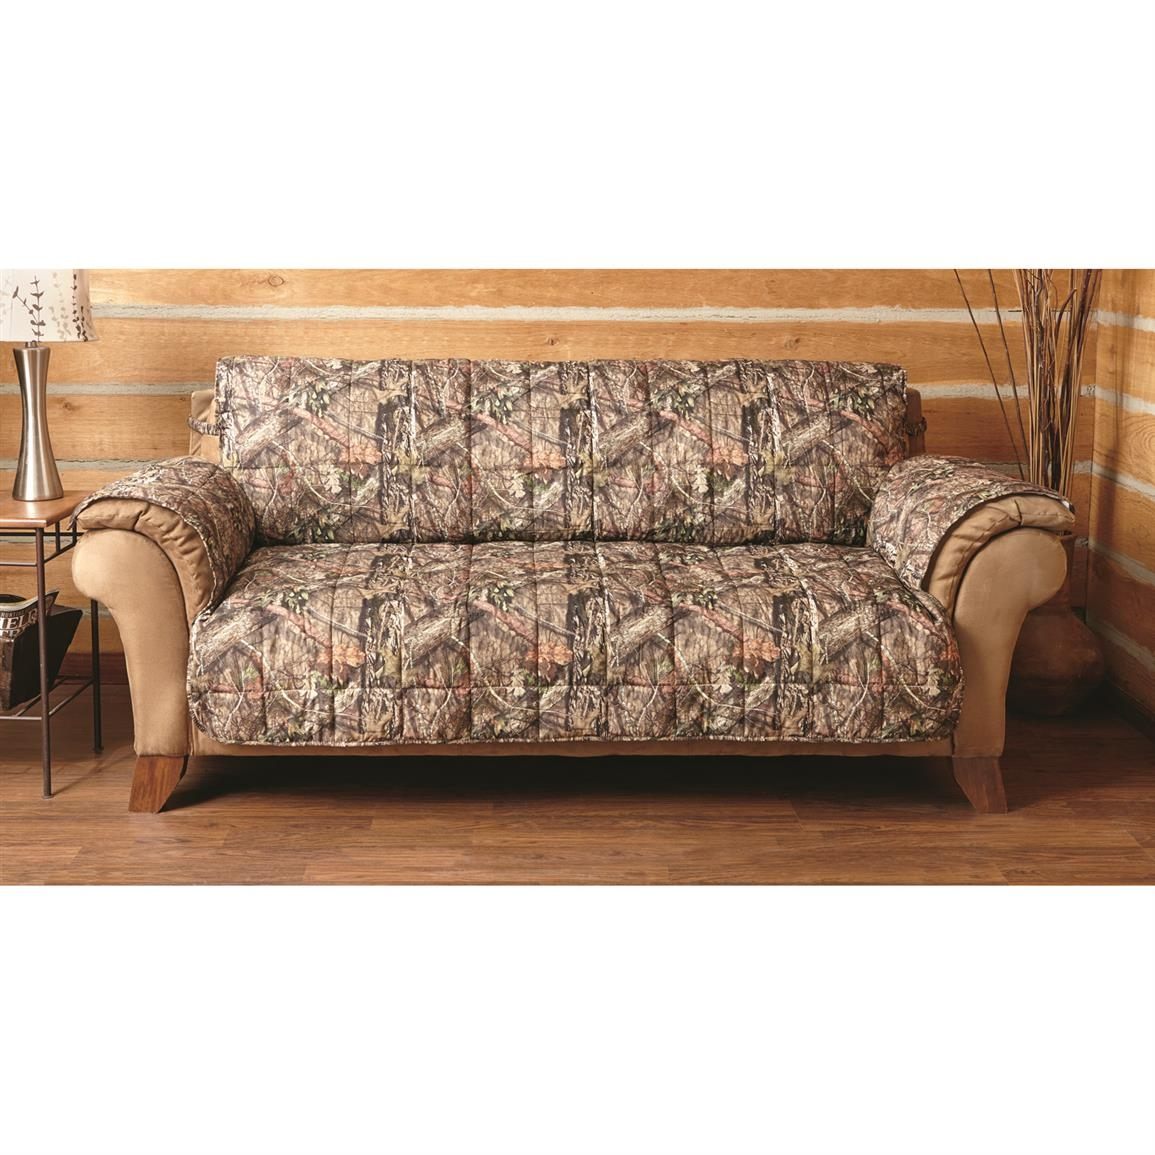 Mossy Oak Camo Furniture Covers 647980 Furniture Covers At For Camo Sofa Cover (#10 of 12)